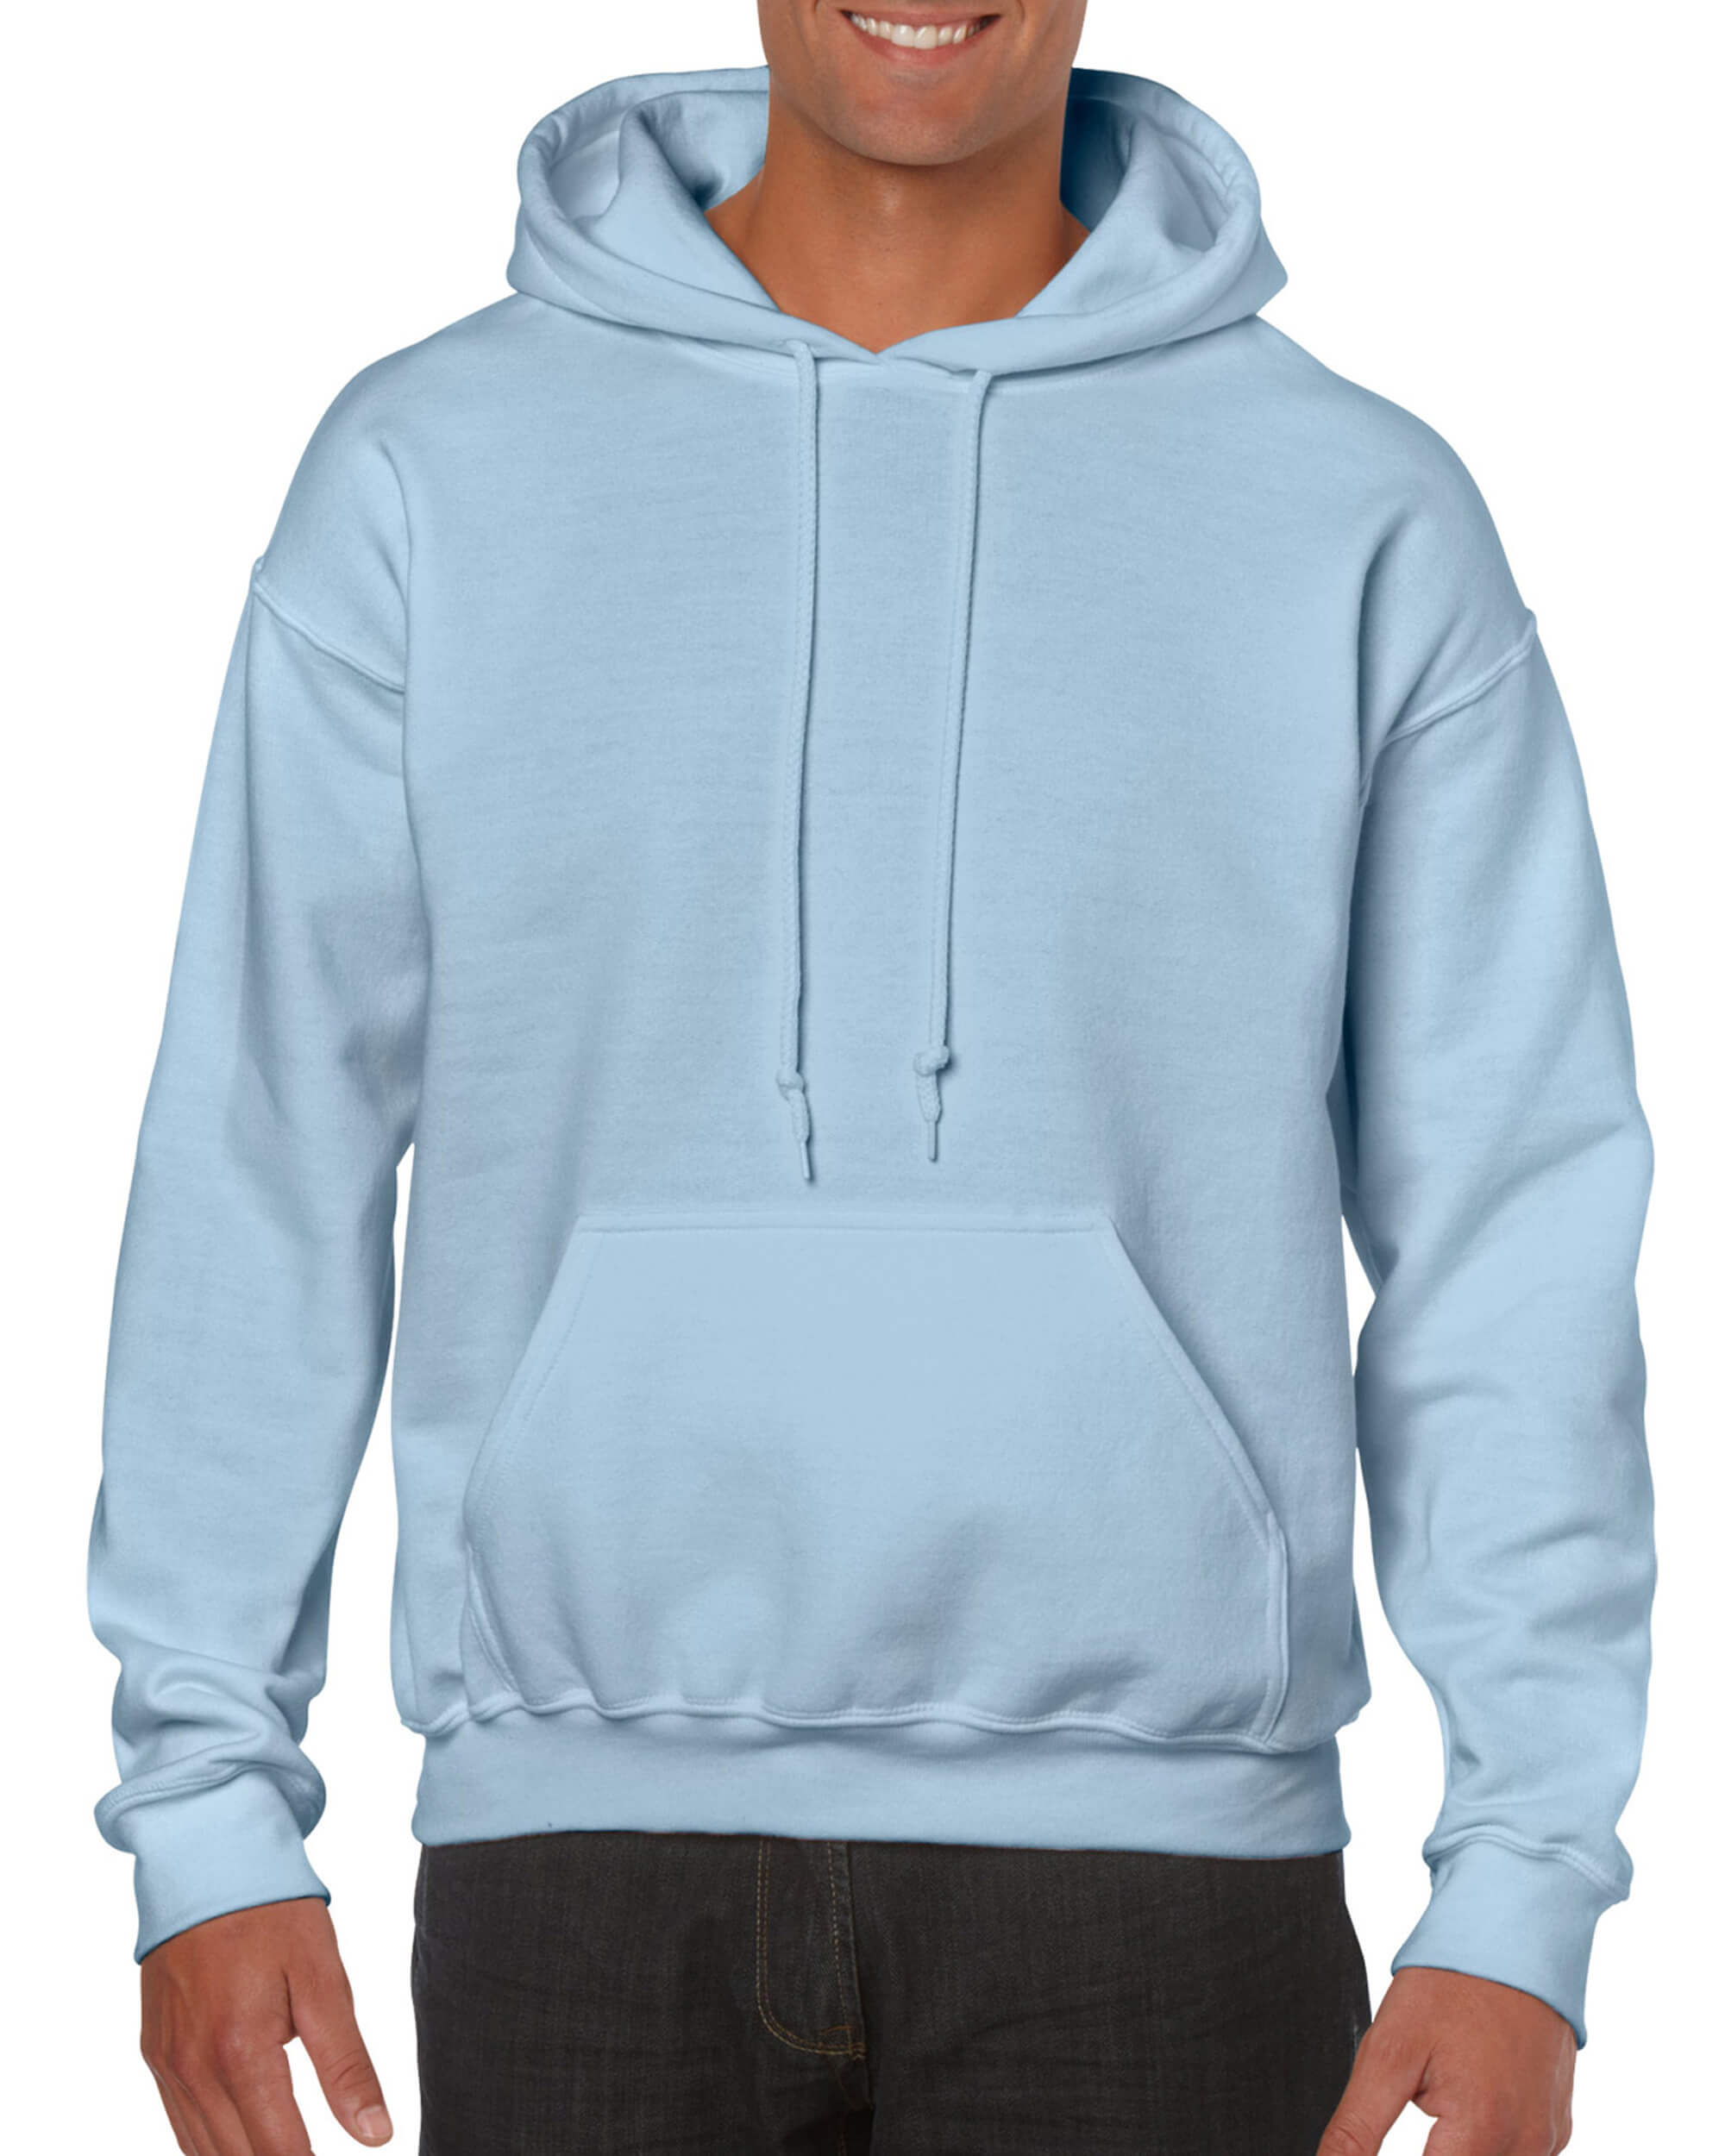 ae0637cf Light Blue Pullover Hoodie • T-Shirt Explosion